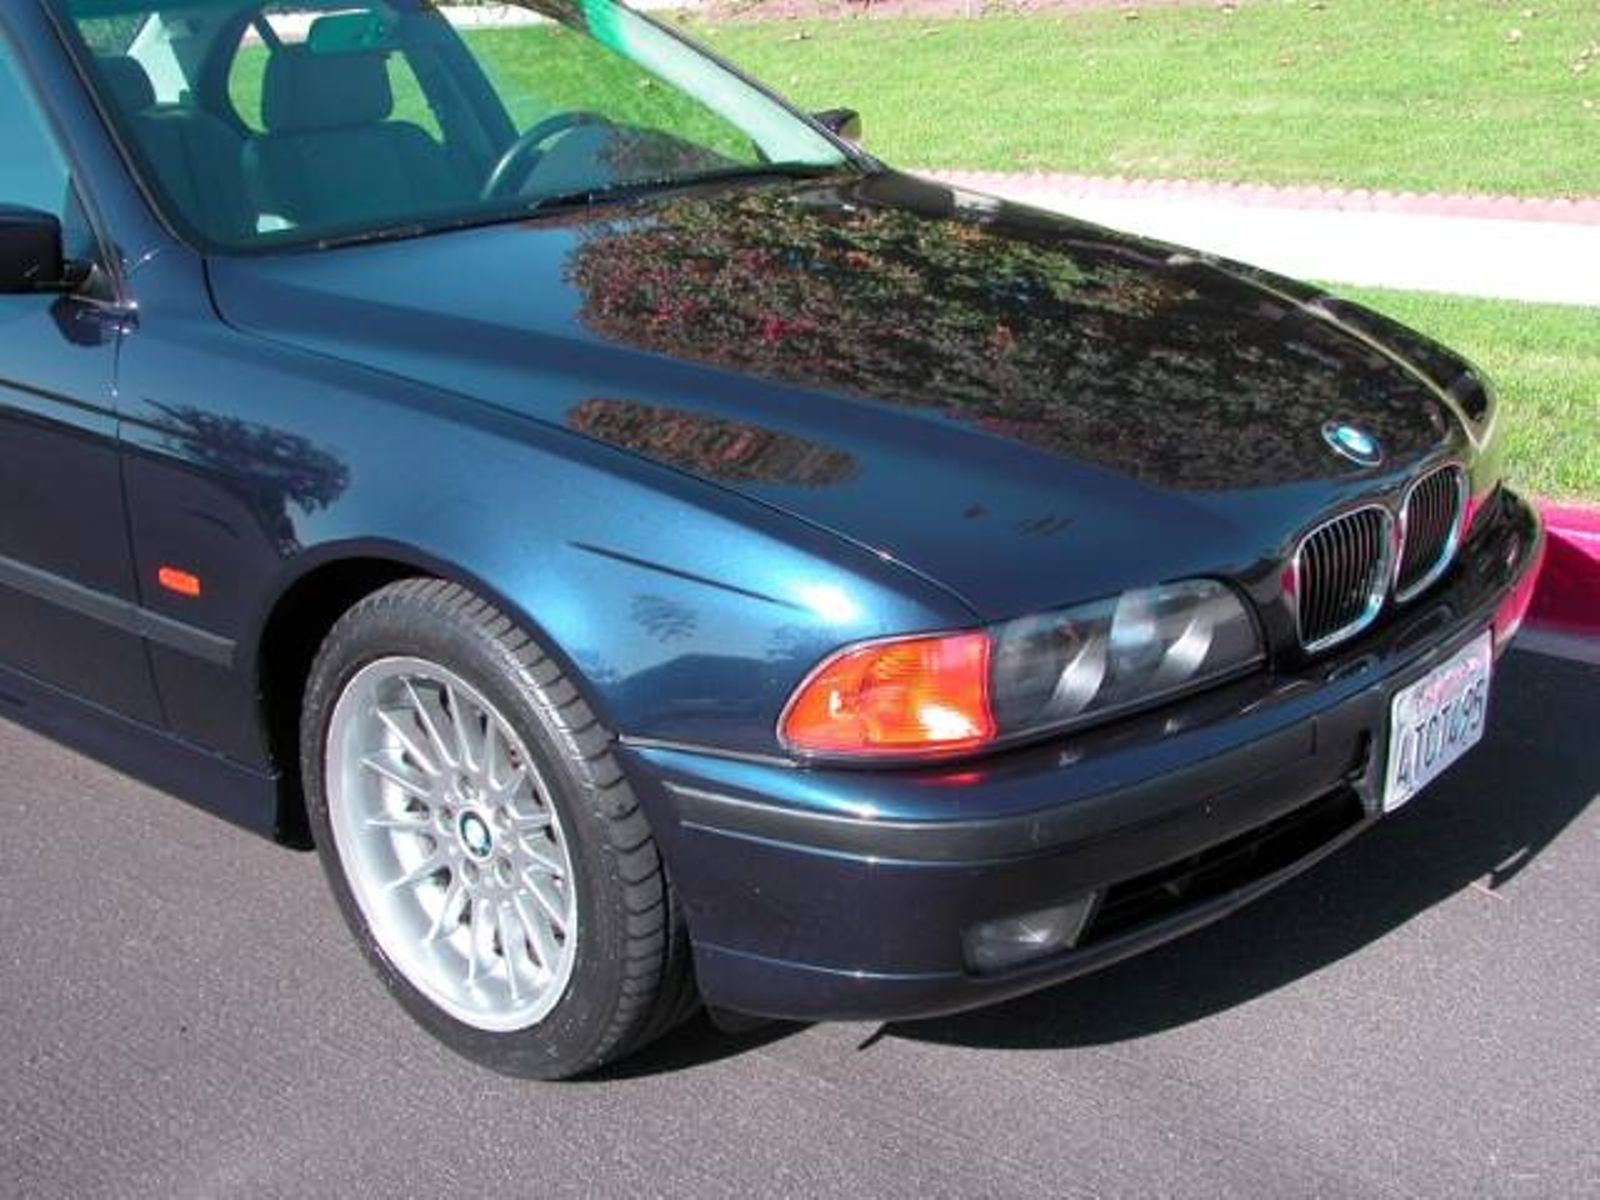 2000 bmw 540i six speed super clean only 37000 miles city california auto fitness class benz  [ 1600 x 1200 Pixel ]